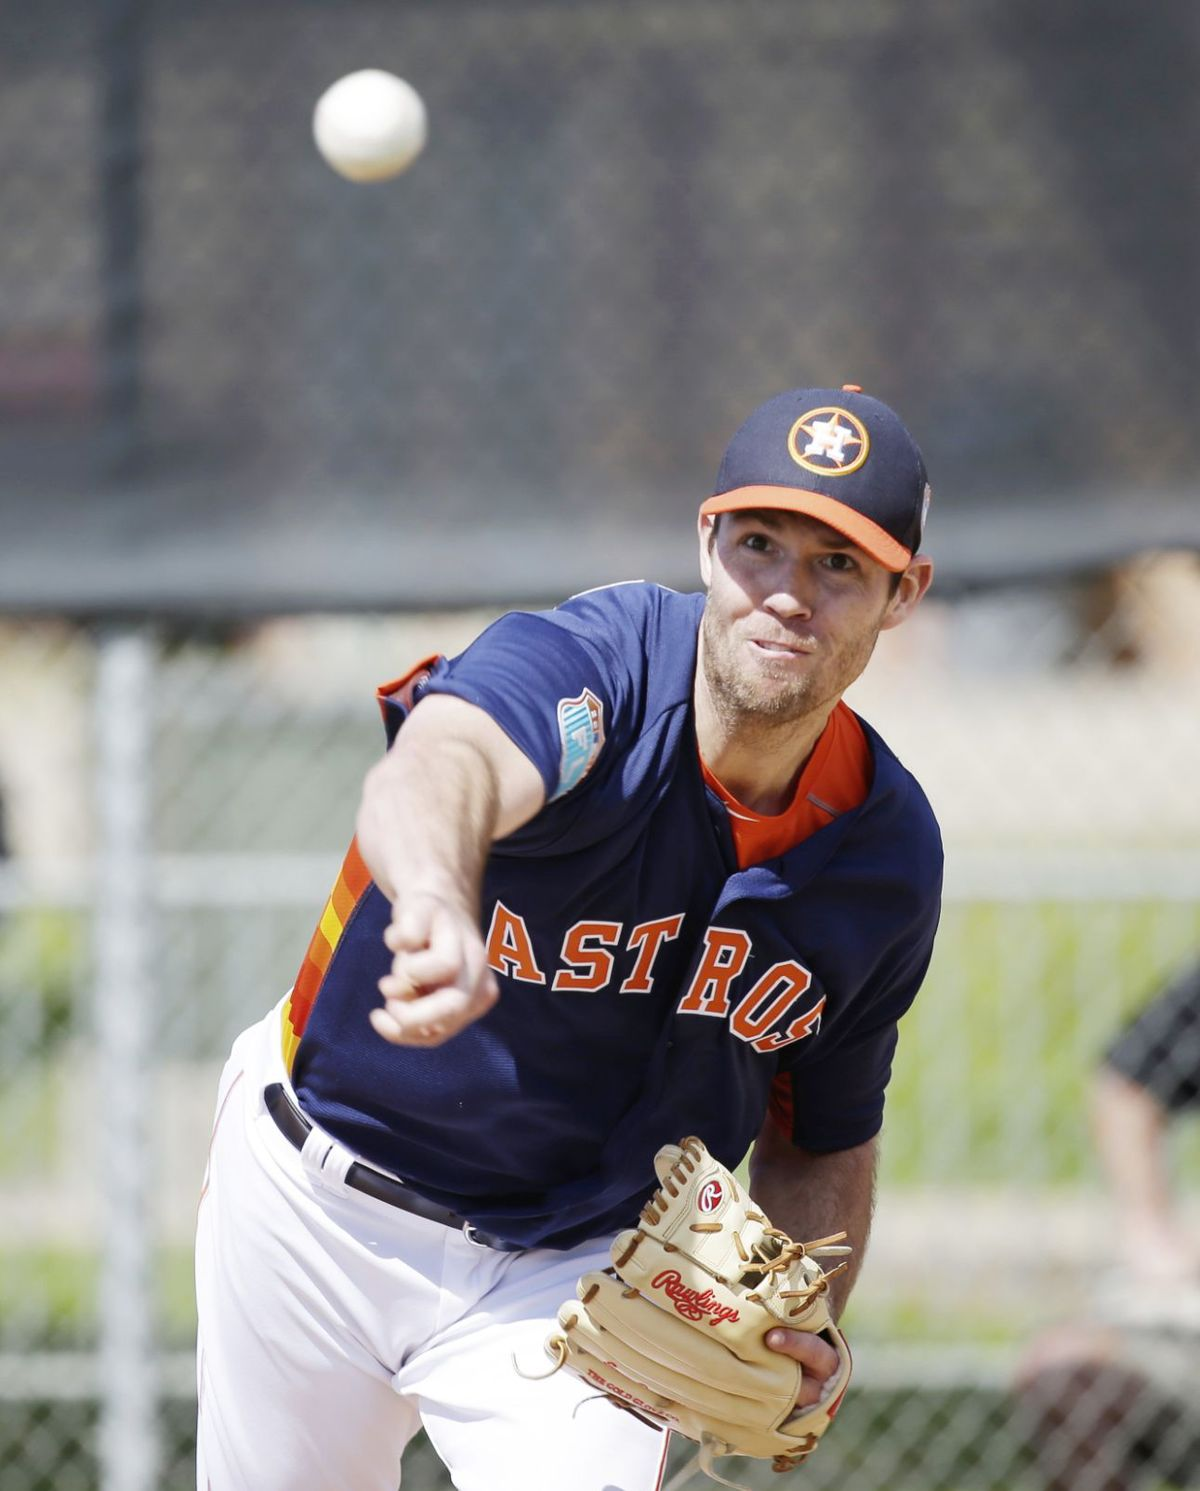 fister